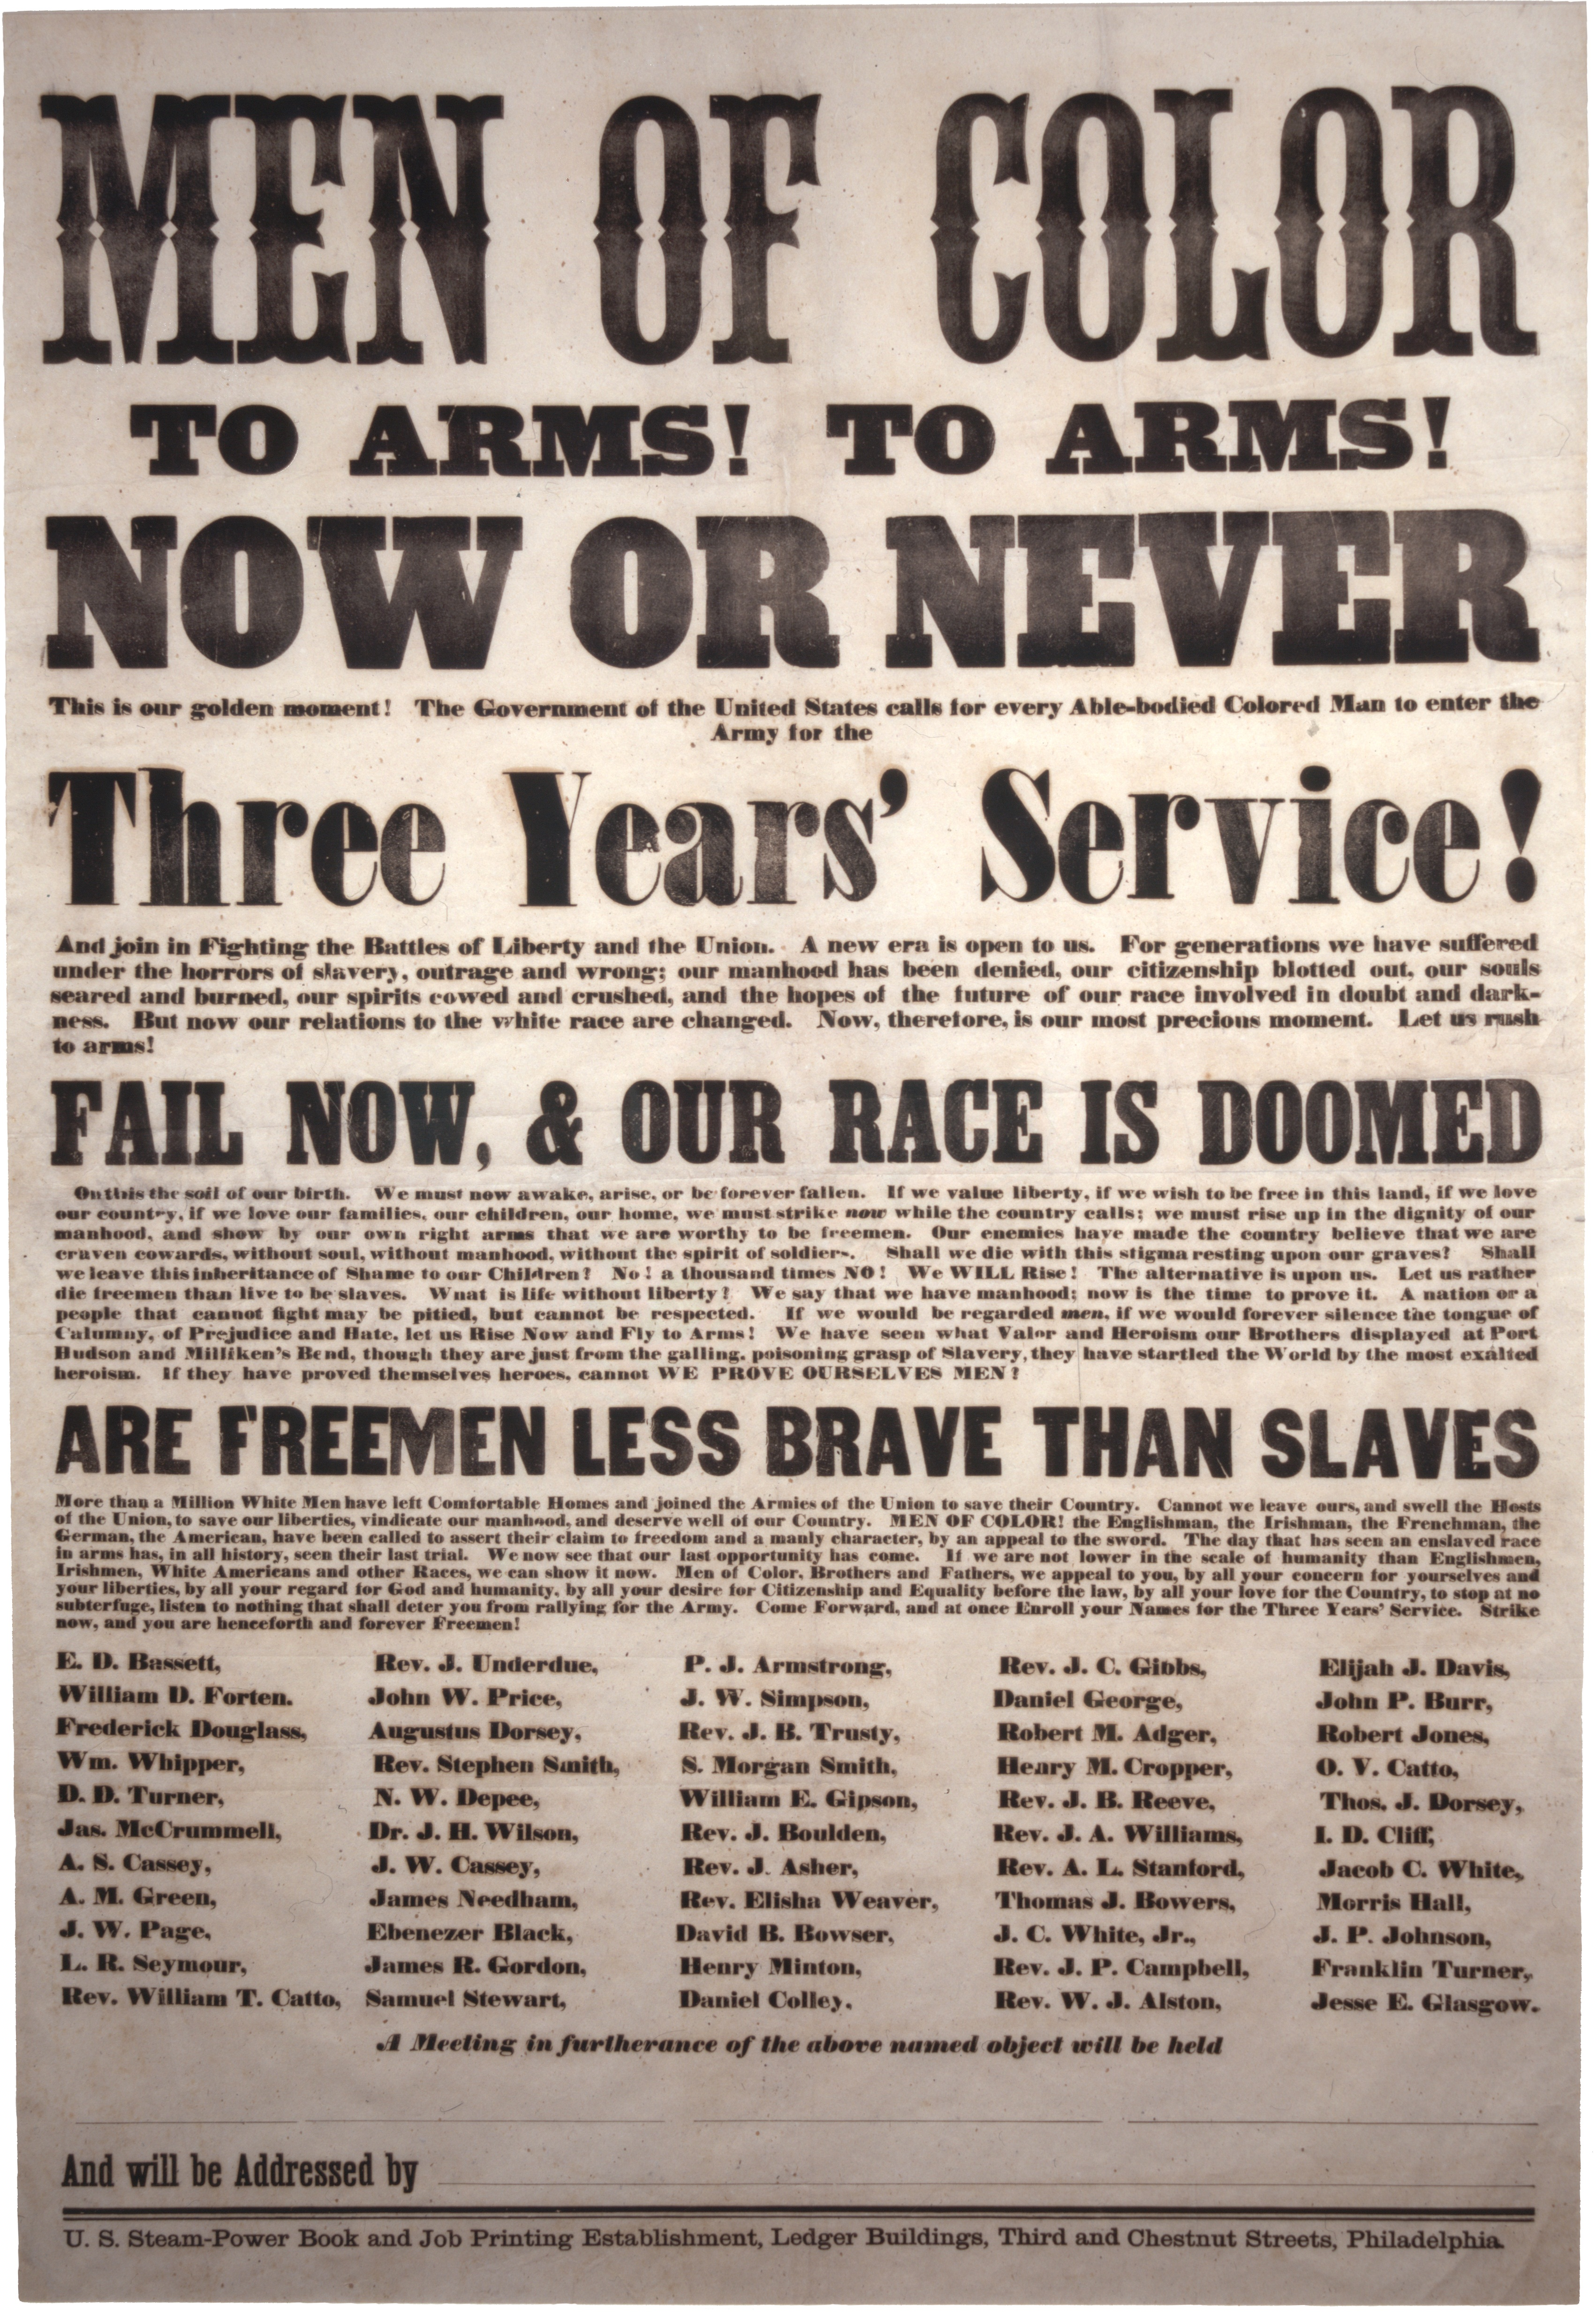 """""""Men of Color, to Arms! to Arms!"""" broadside, ca. 1863 (Private Collection)"""